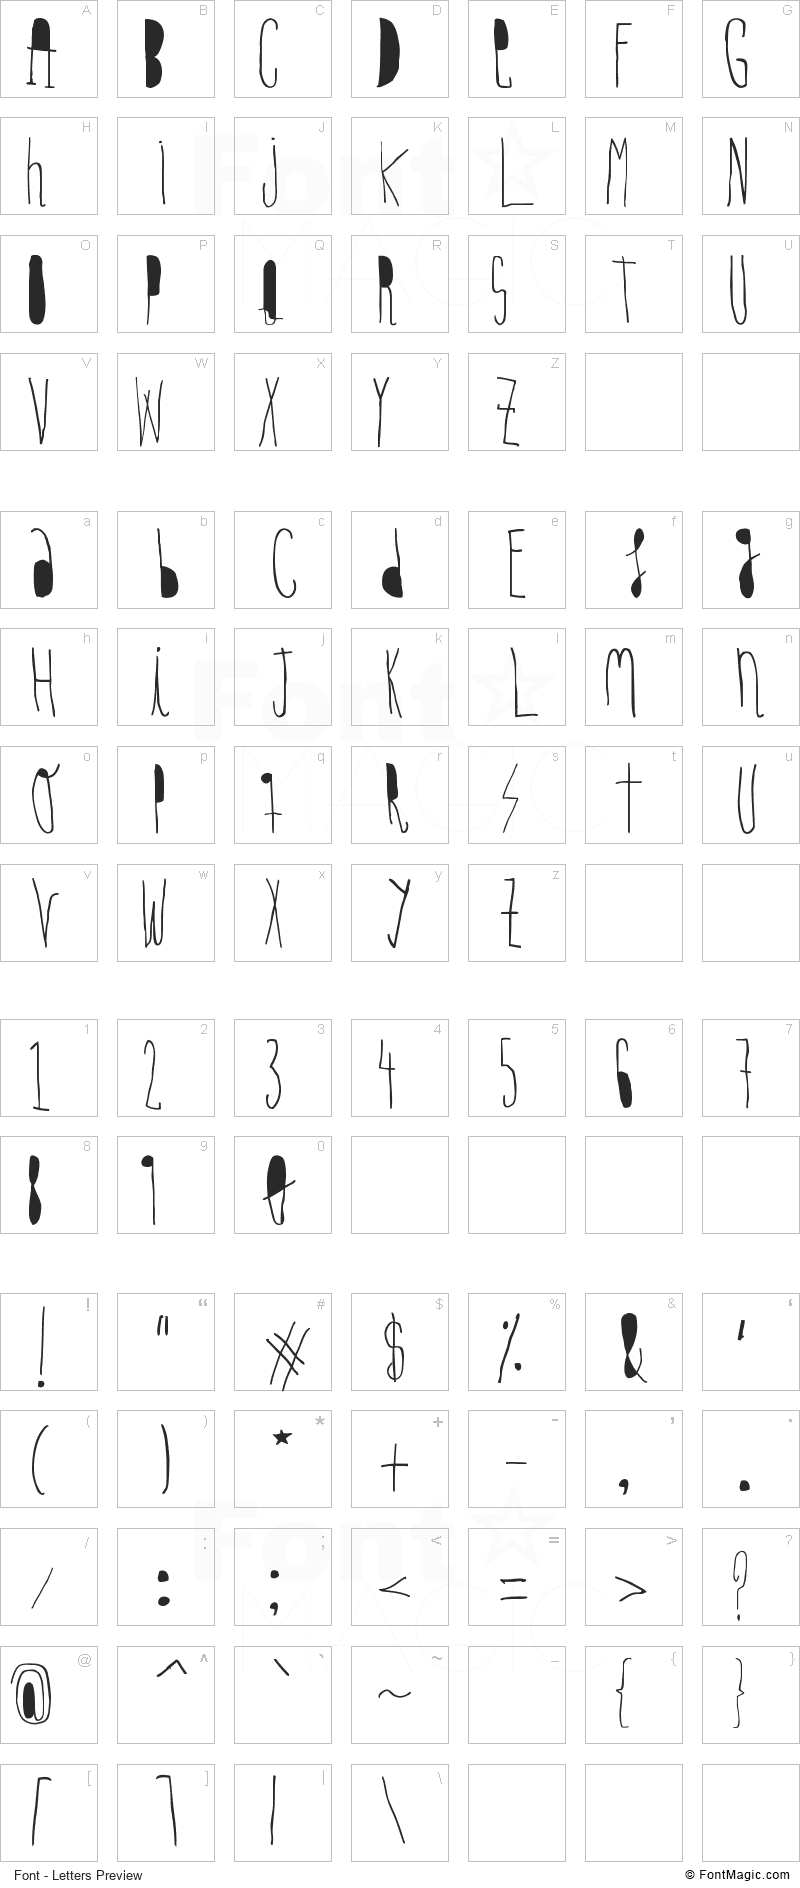 Woodcutter Hand Light Font - All Latters Preview Chart